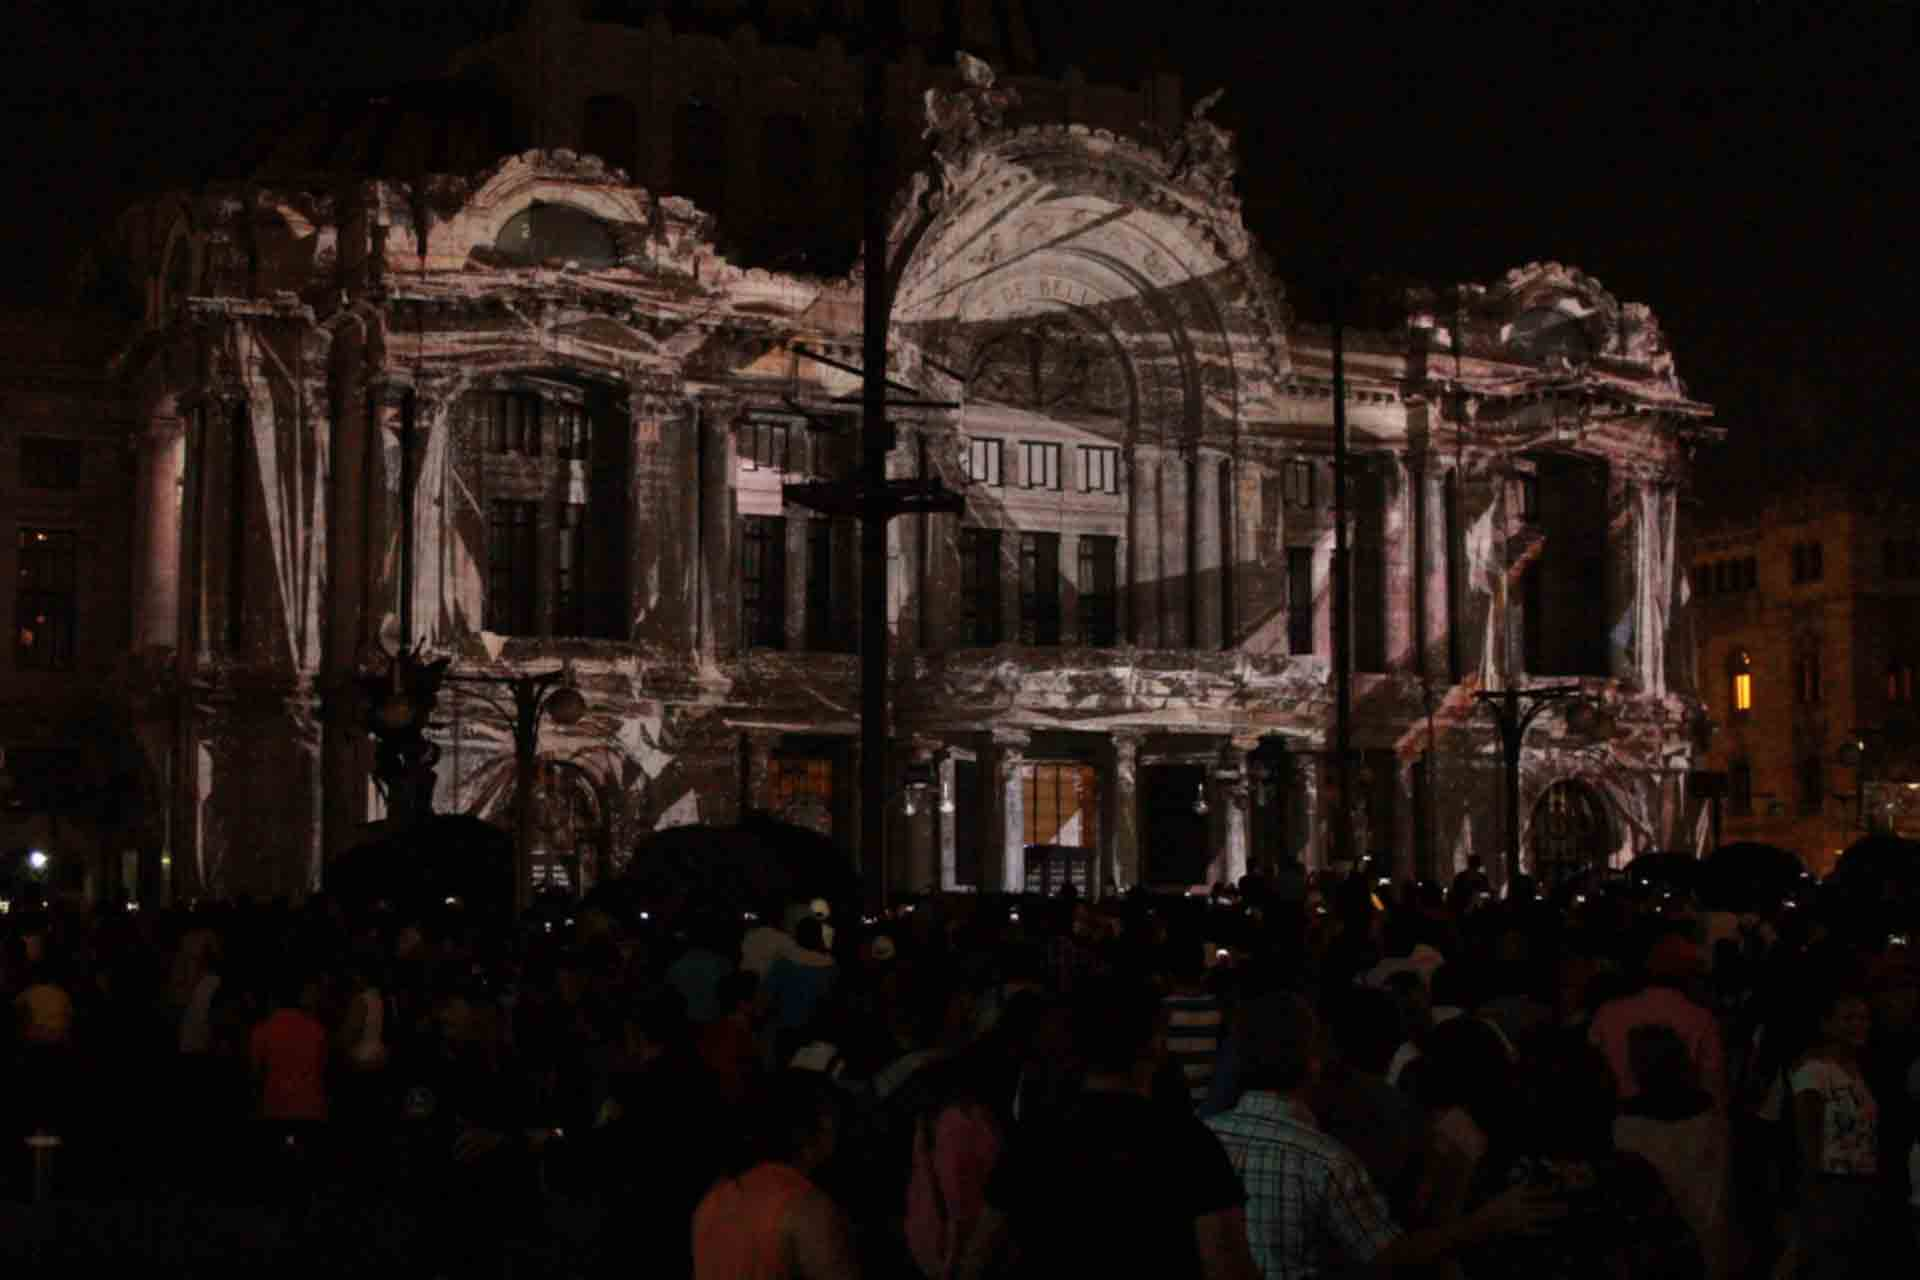 Bordos bellas artes